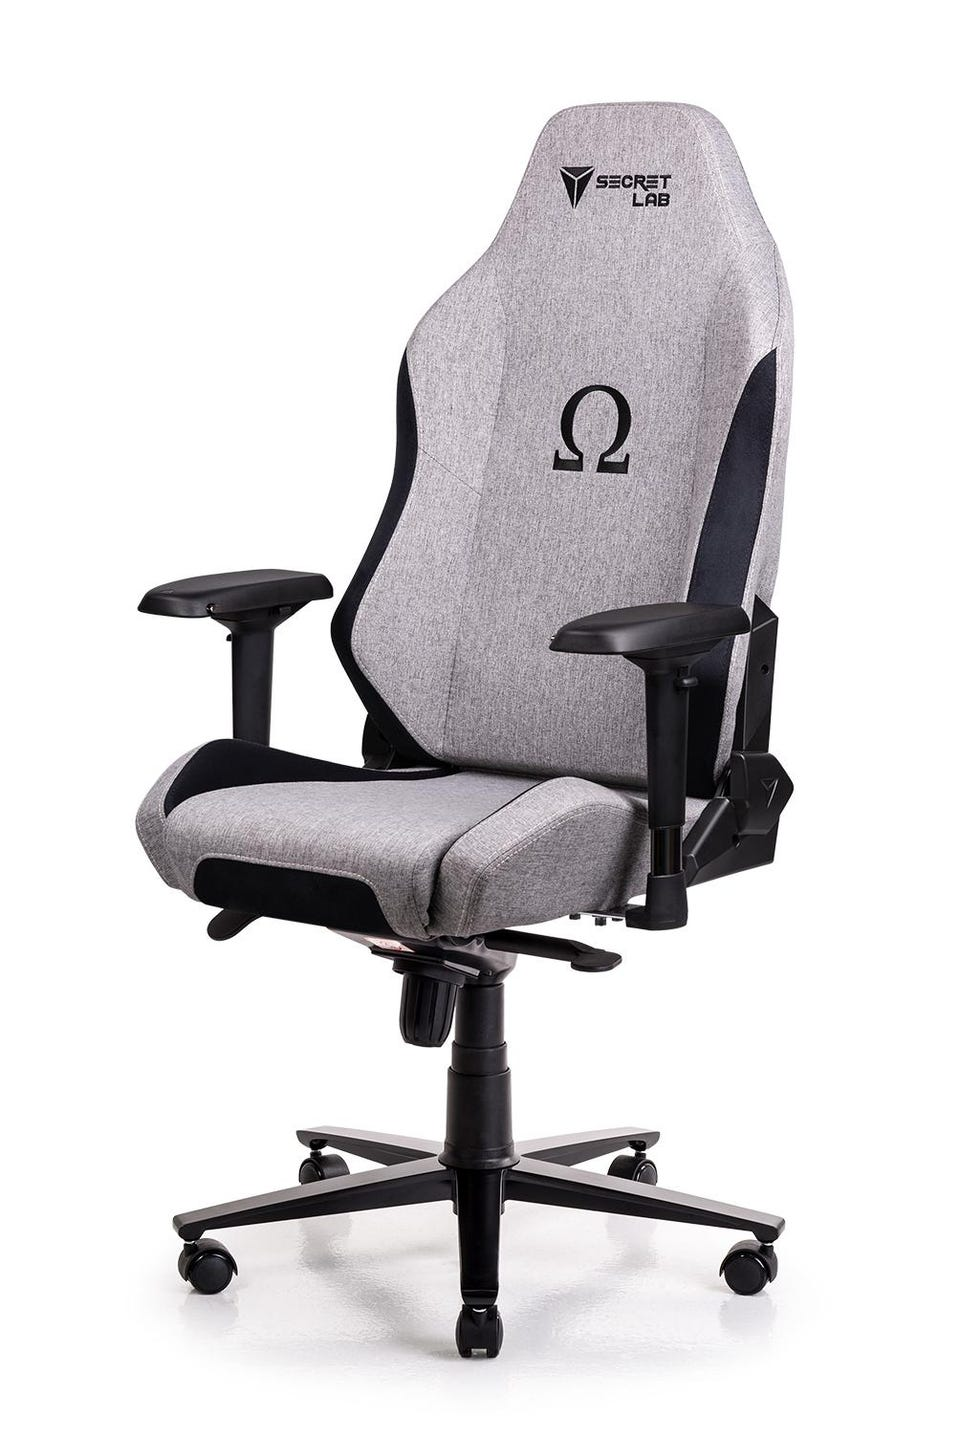 Titan Chair Secretlab Titan Softweave Gaming Chair Review Titanic Back Support